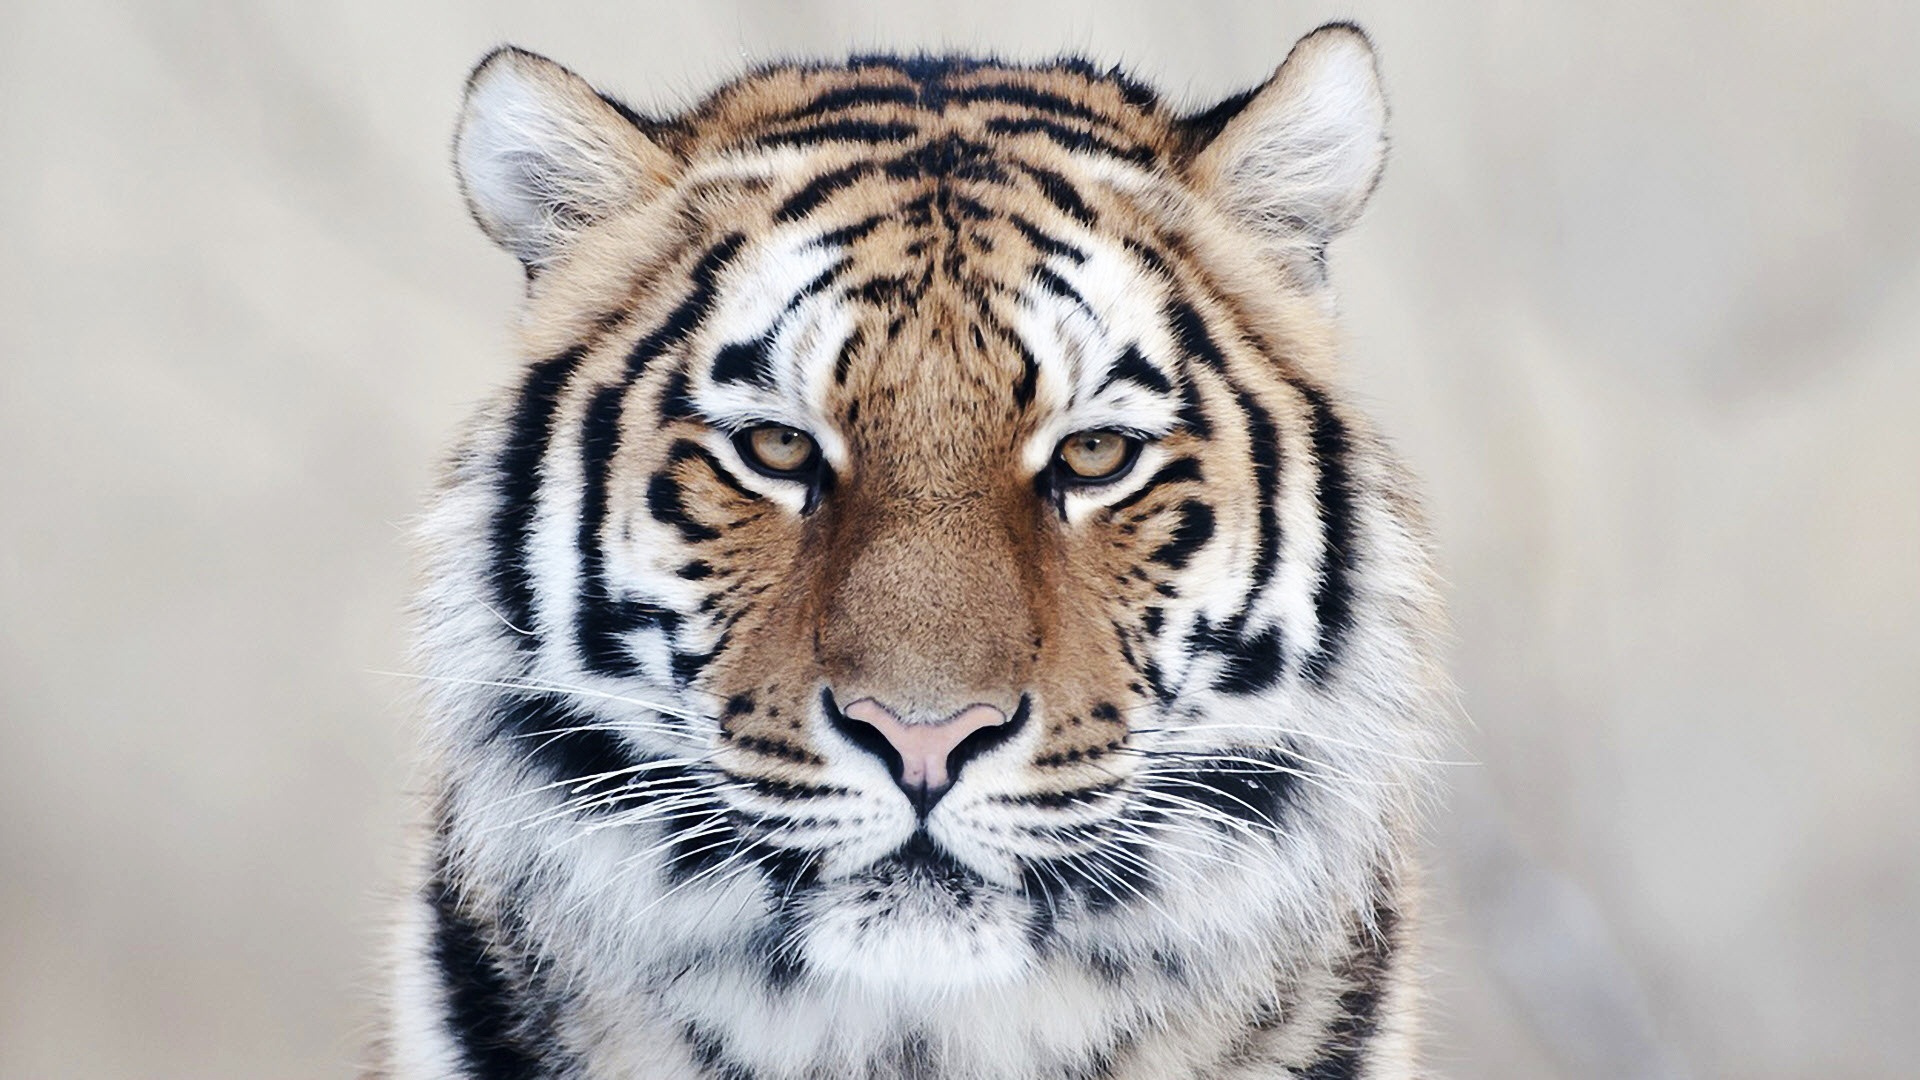 Wonderful Wallpaper High Quality Tiger - tiger-close-up_105434725  Gallery_545458.jpg